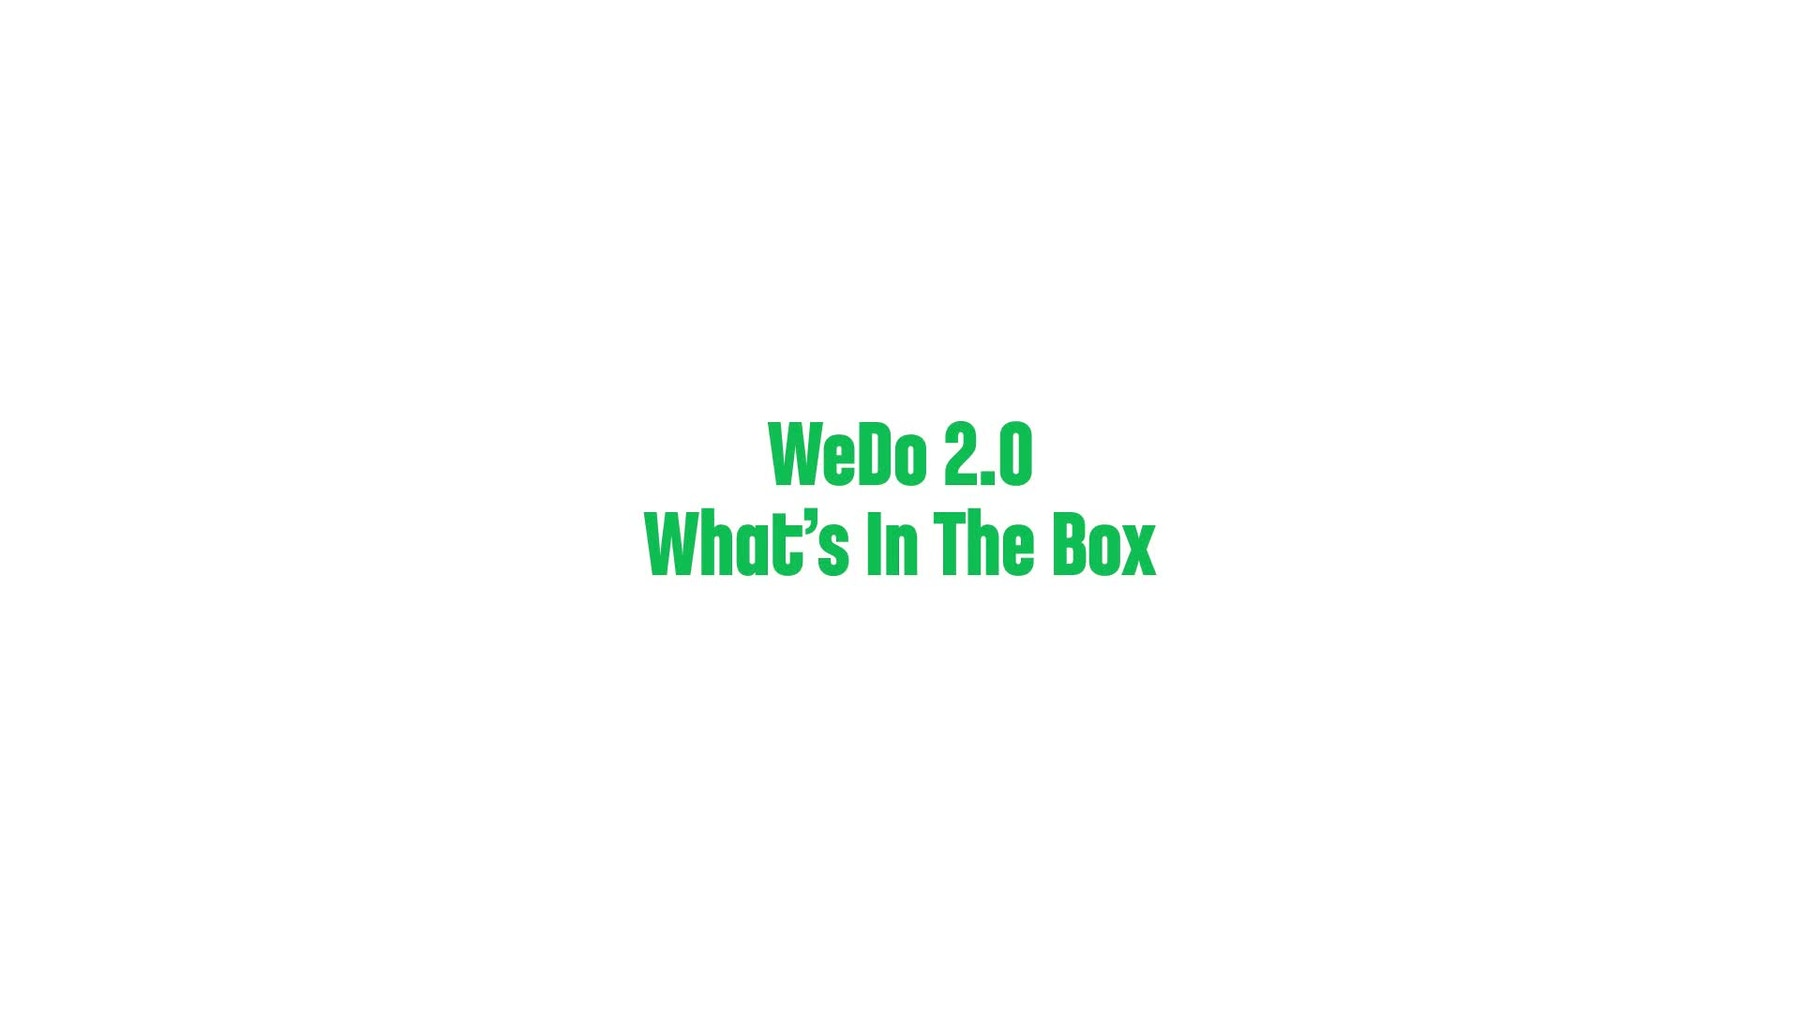 WeDo-2-Whats-In-The-Box